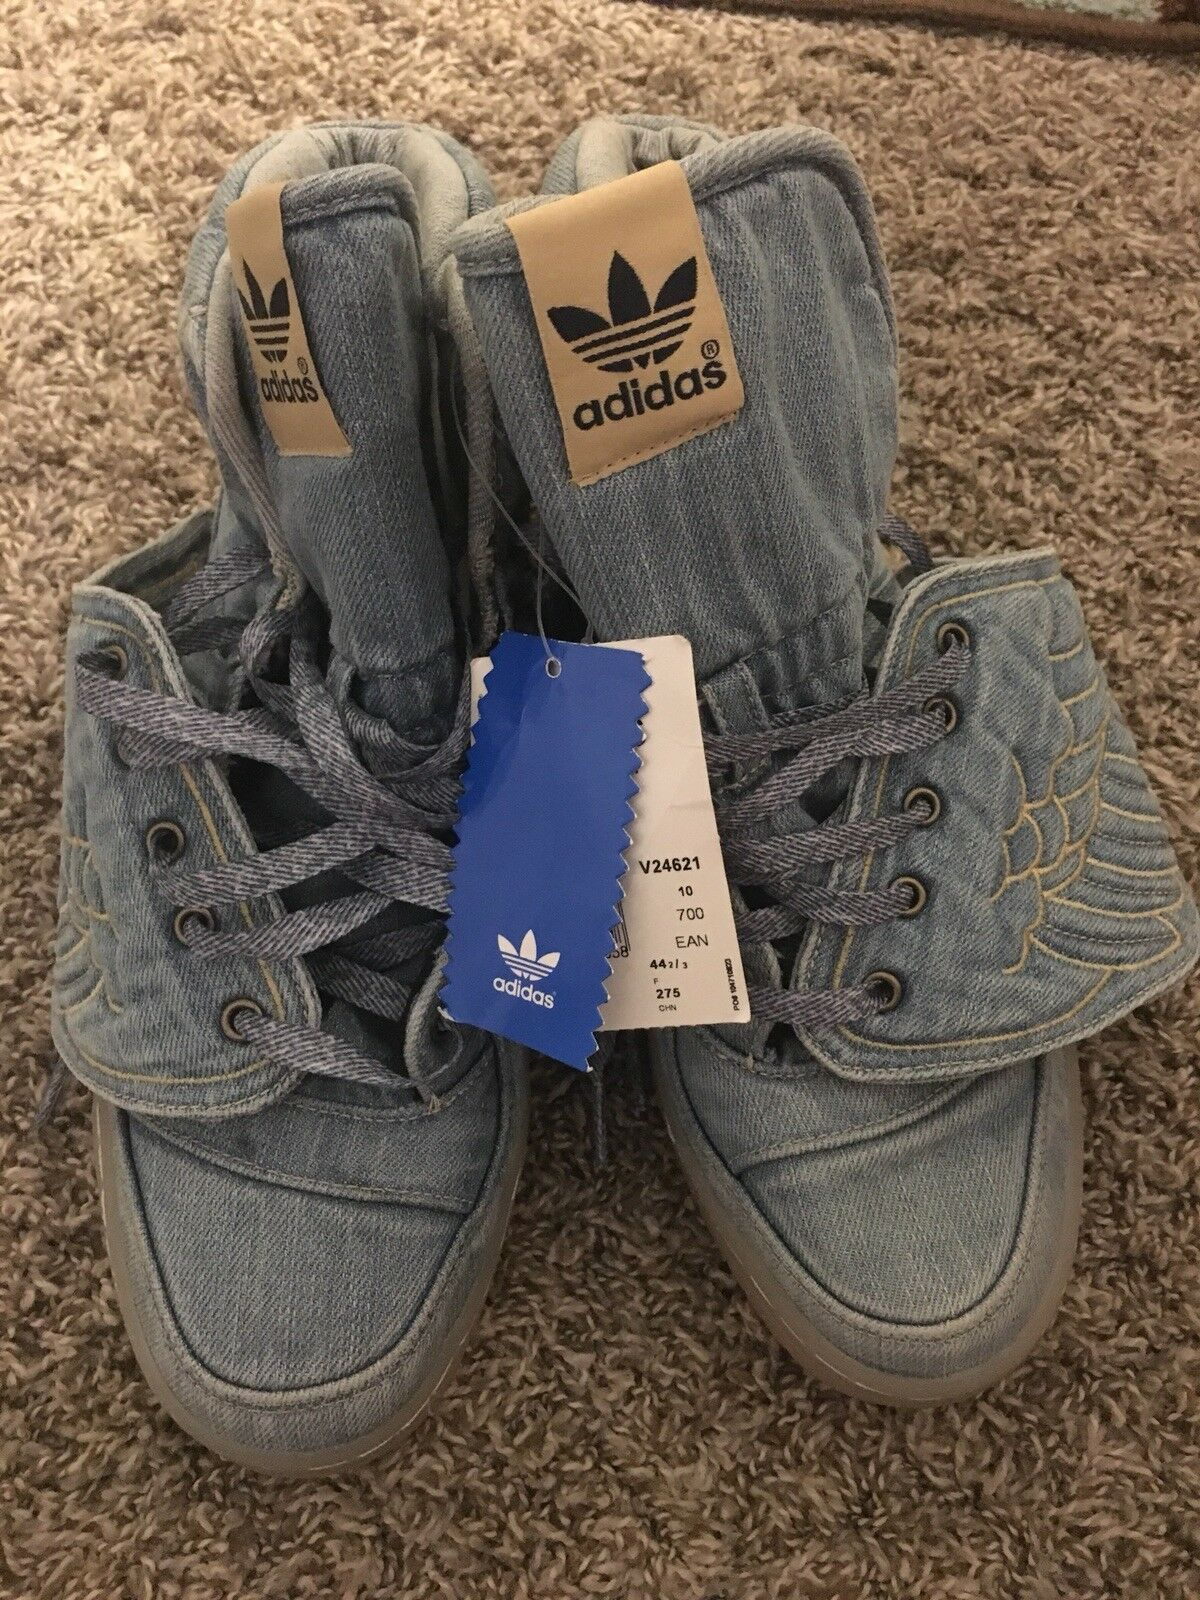 adidas jeremy scott denim wing shoes